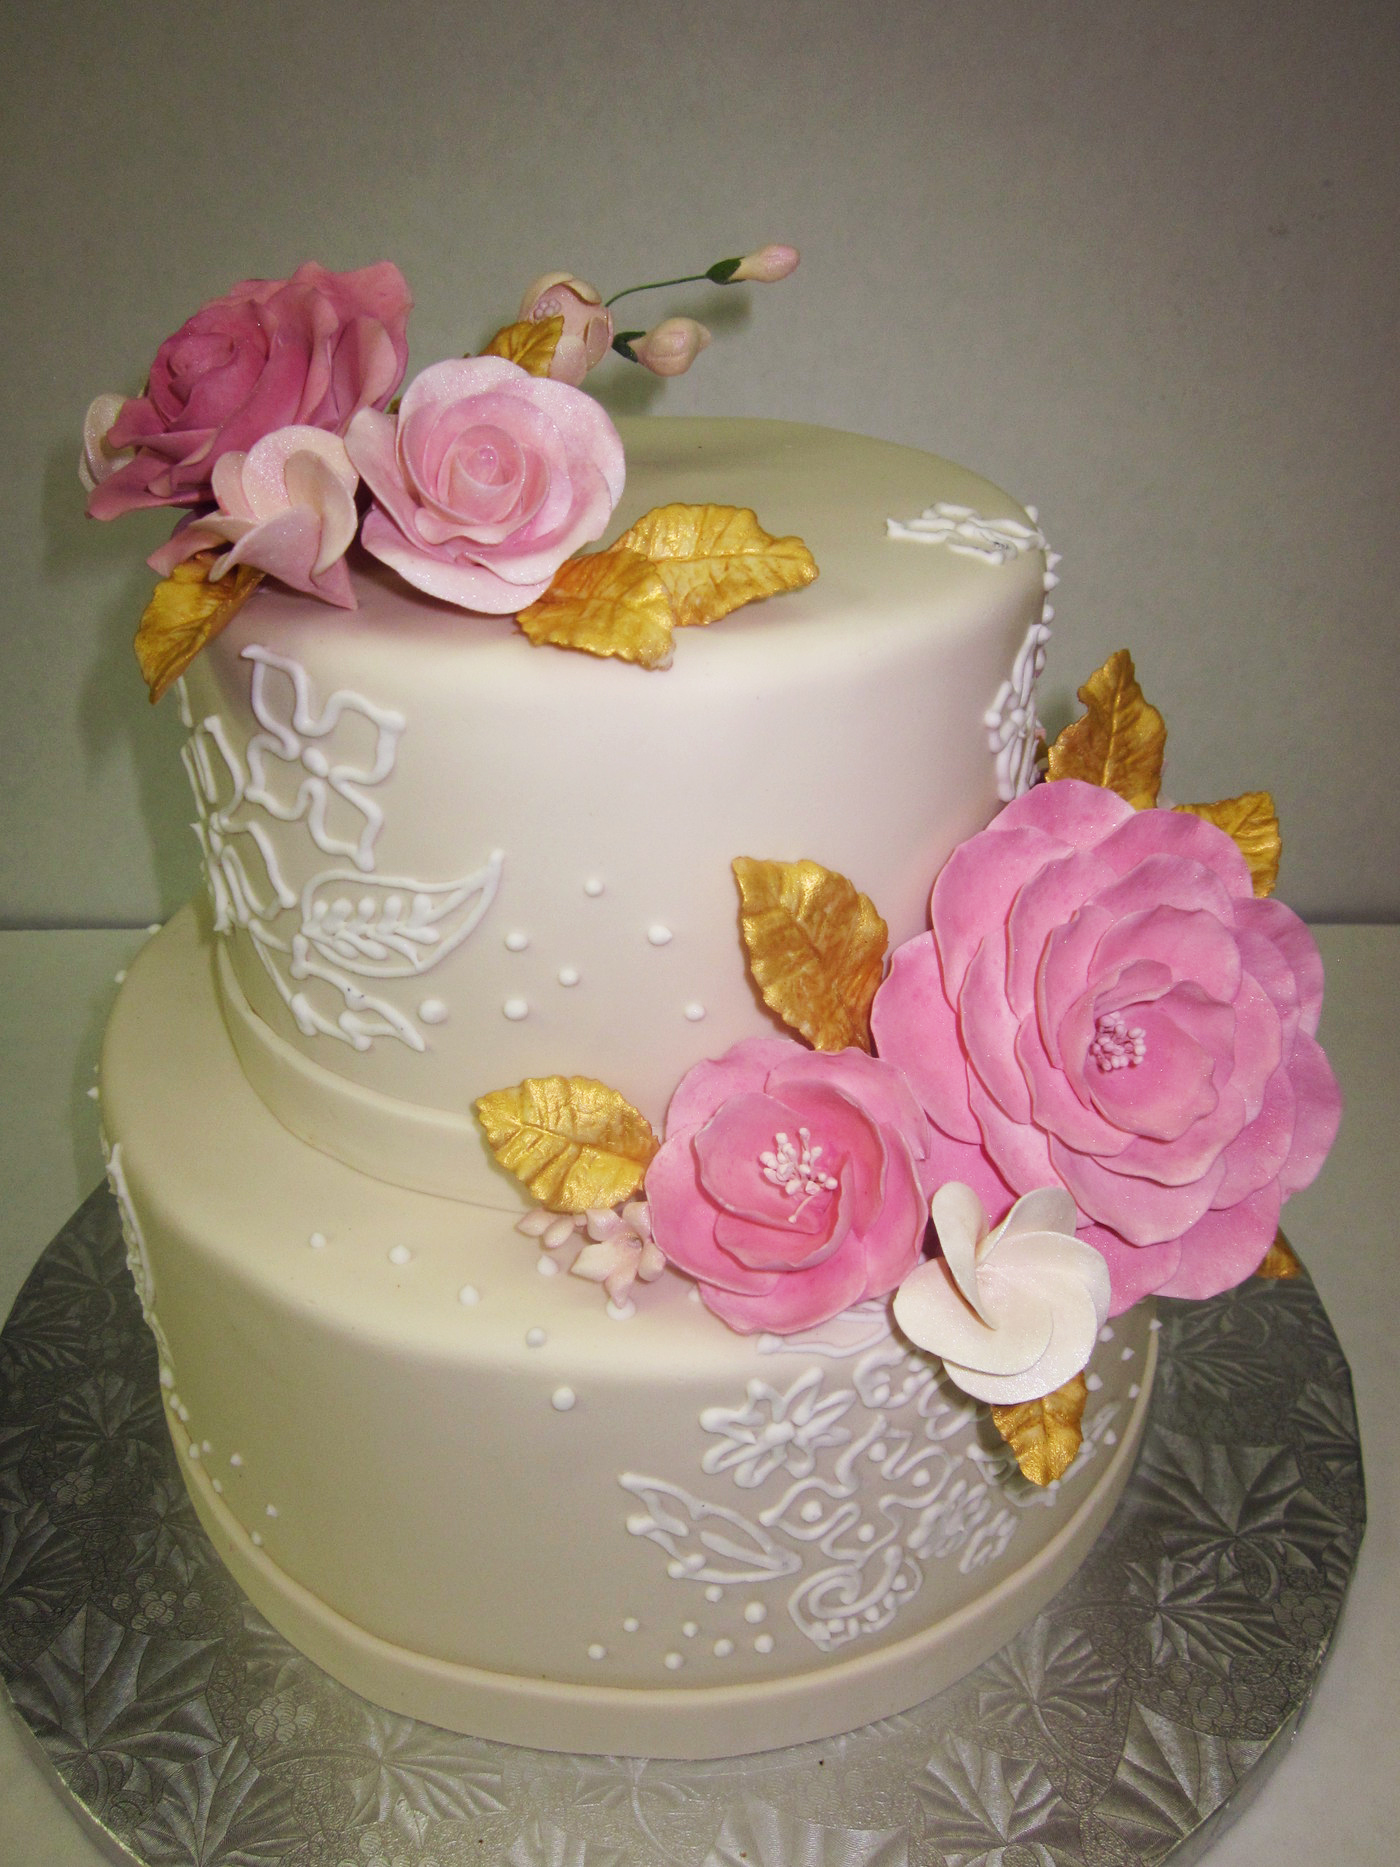 Custom Cakes & Wedding Cakes - Cafe Madeleine in San Francisco